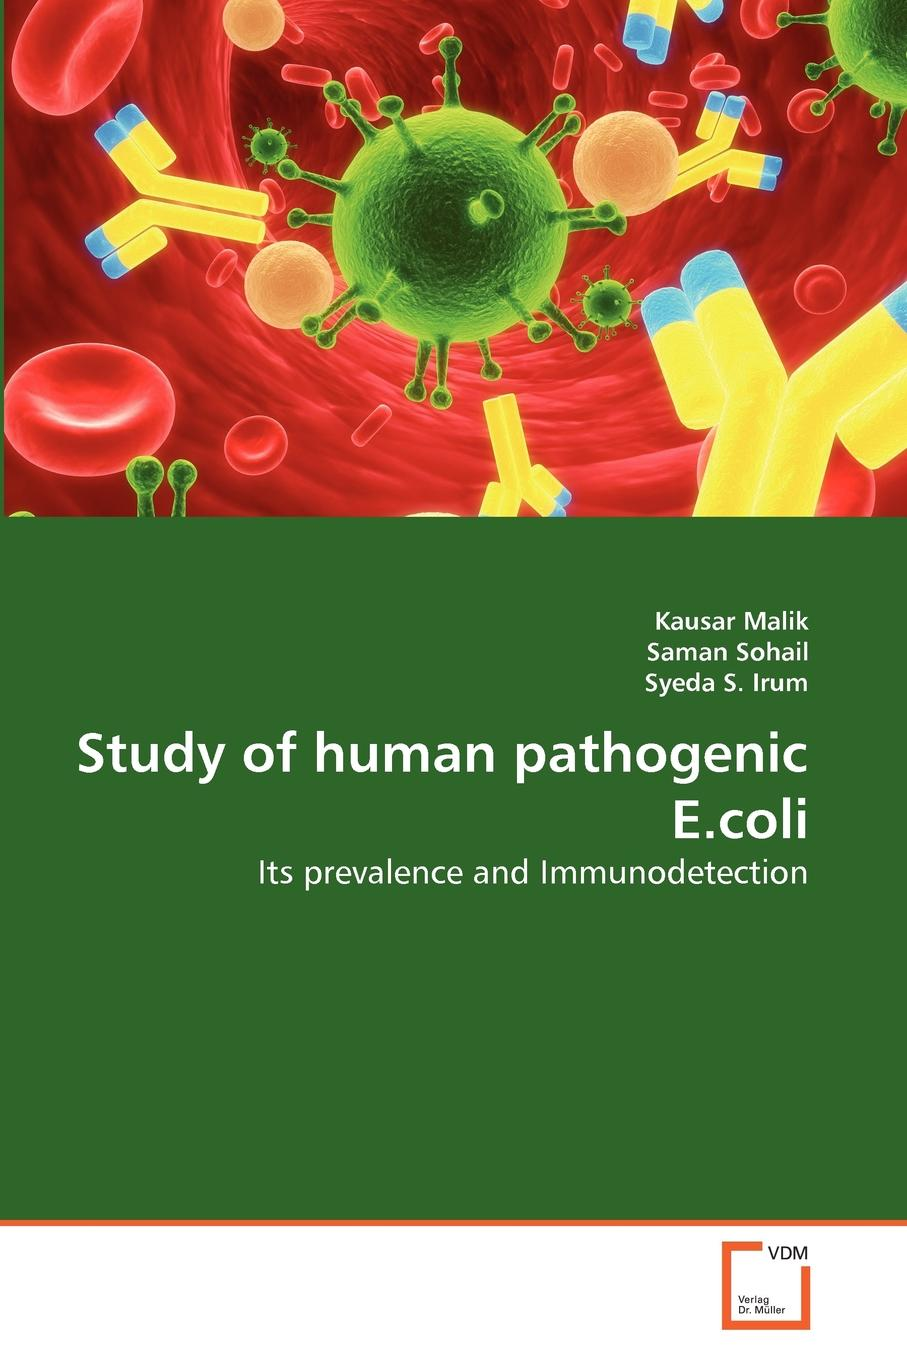 Kausar Malik, Saman Sohail, Syeda S. Irum Study of human pathogenic E.coli hae soo kwak nano and microencapsulation for foods